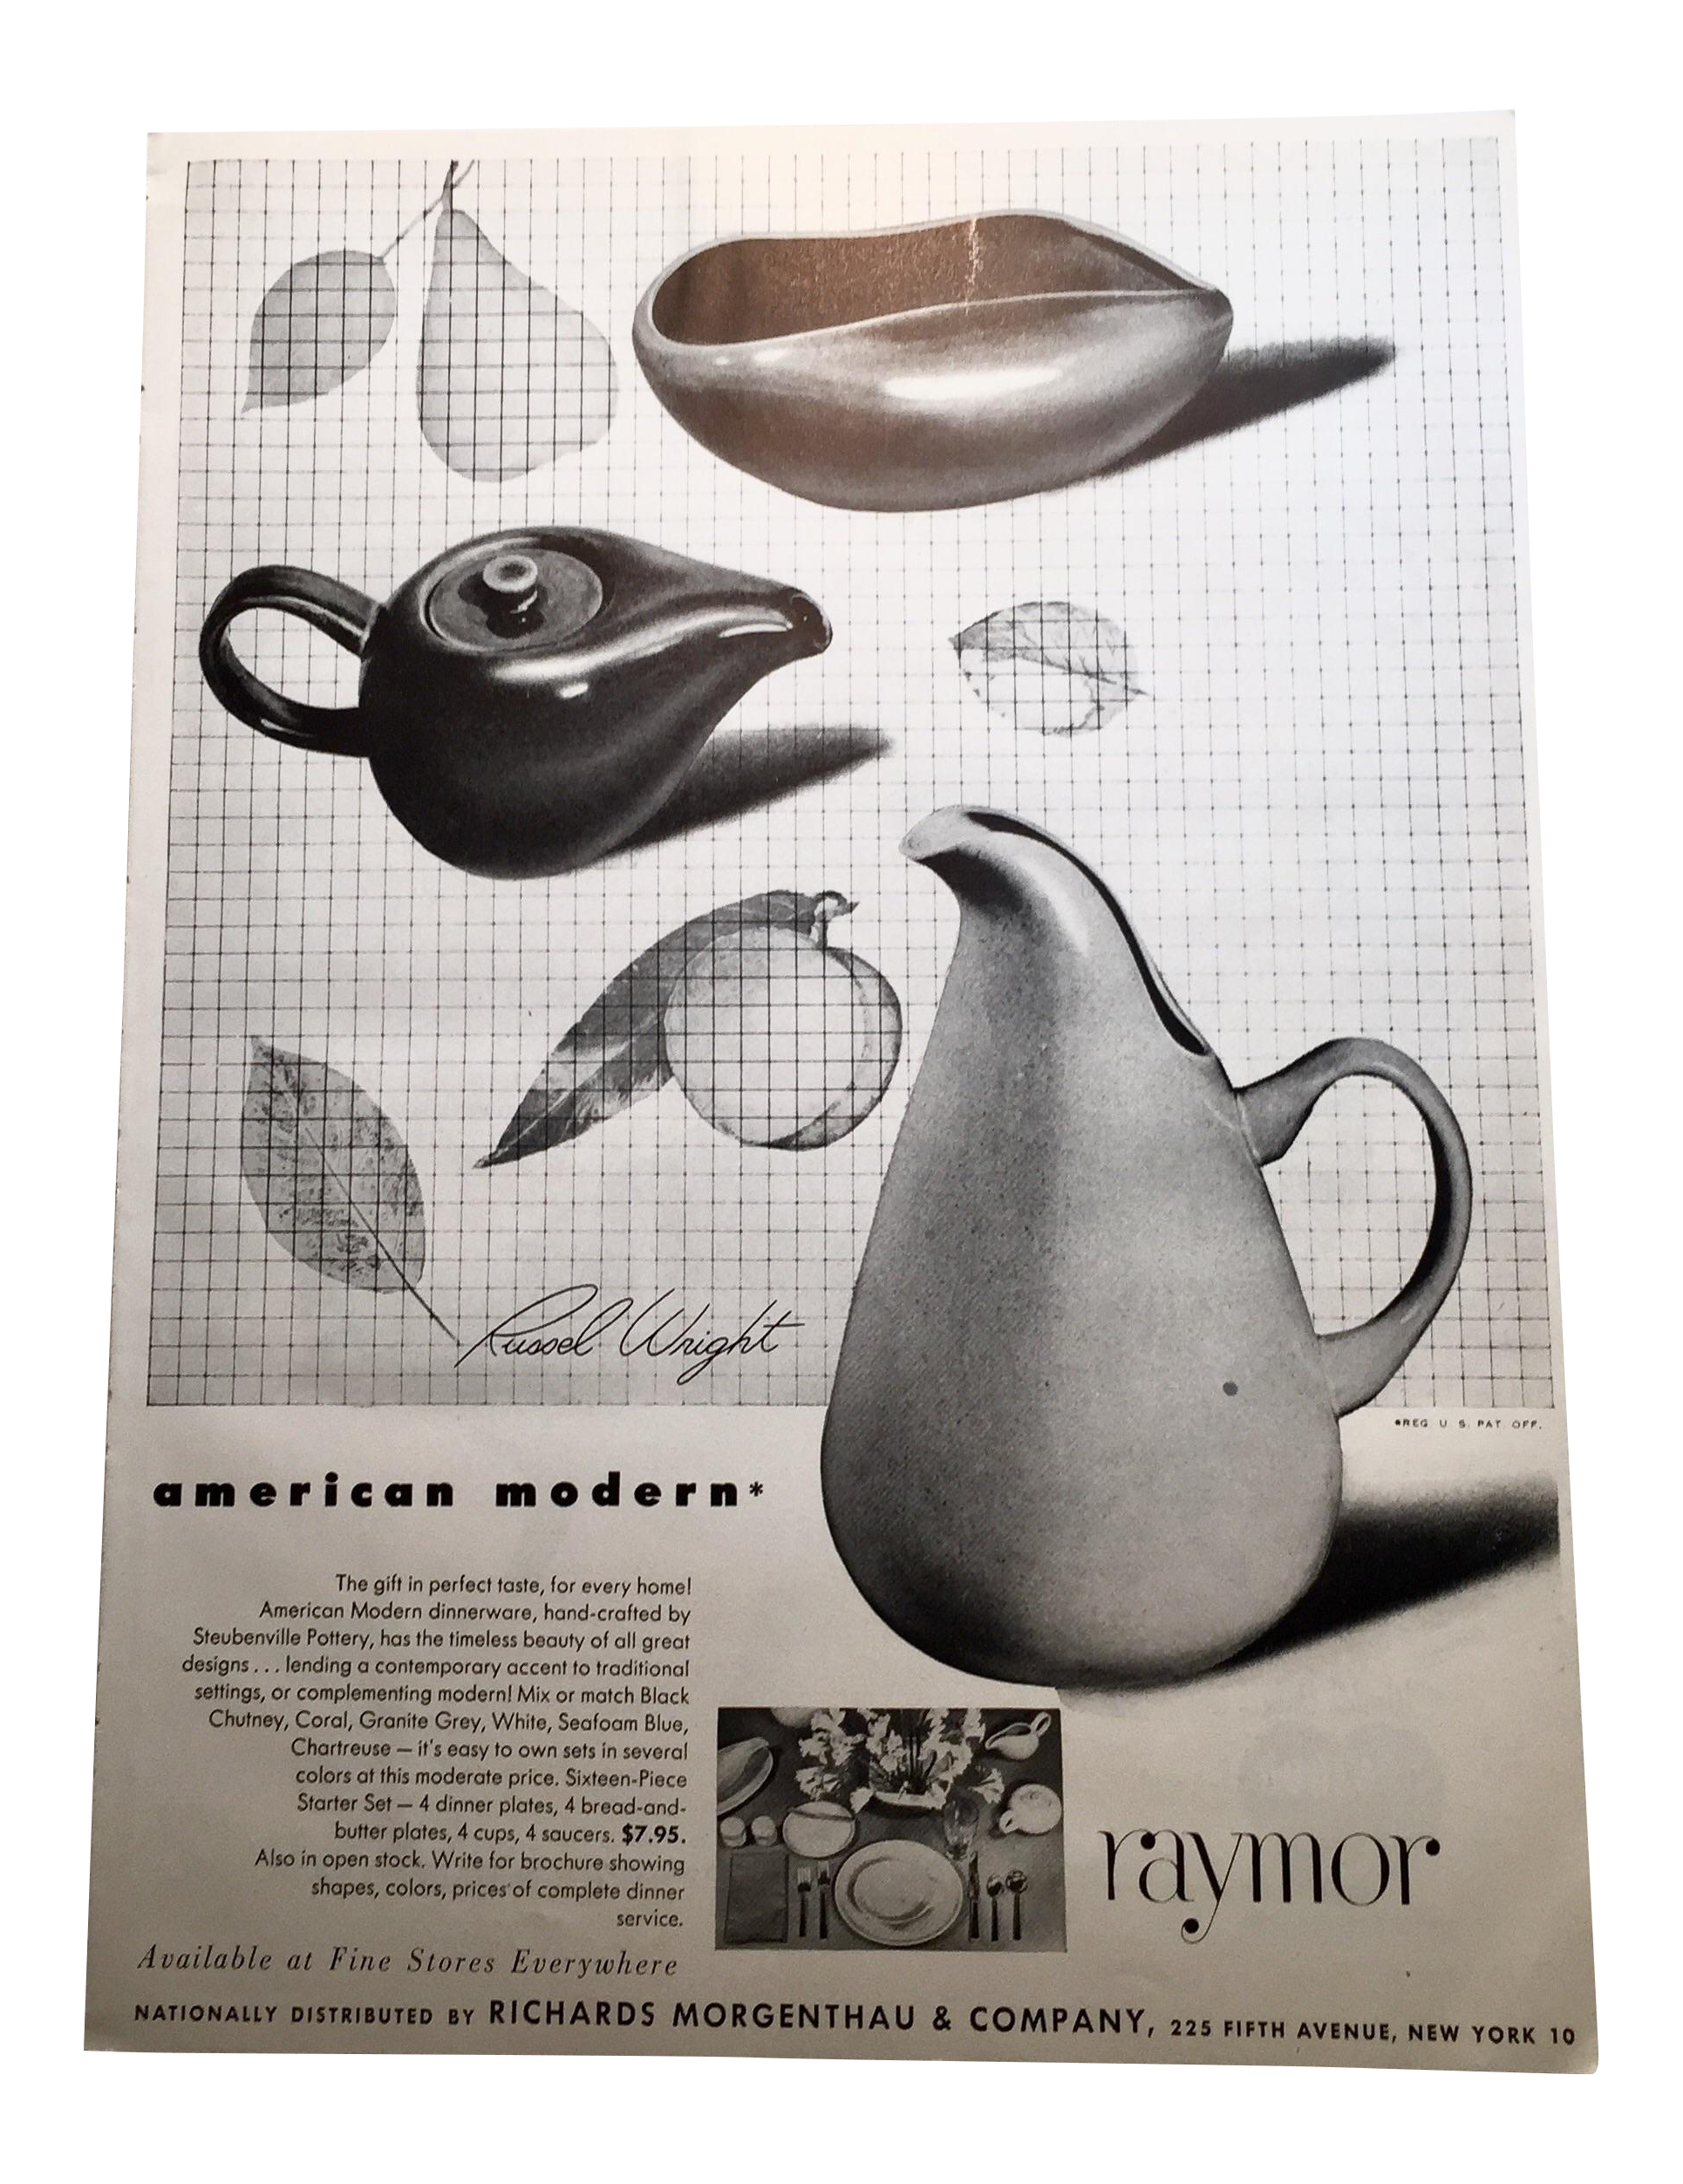 Russel Wright Dinnerware Raymor 1943 Advertisement - Image 1 of 4  sc 1 st  Chairish & Russel Wright Dinnerware Raymor 1943 Advertisement | Chairish